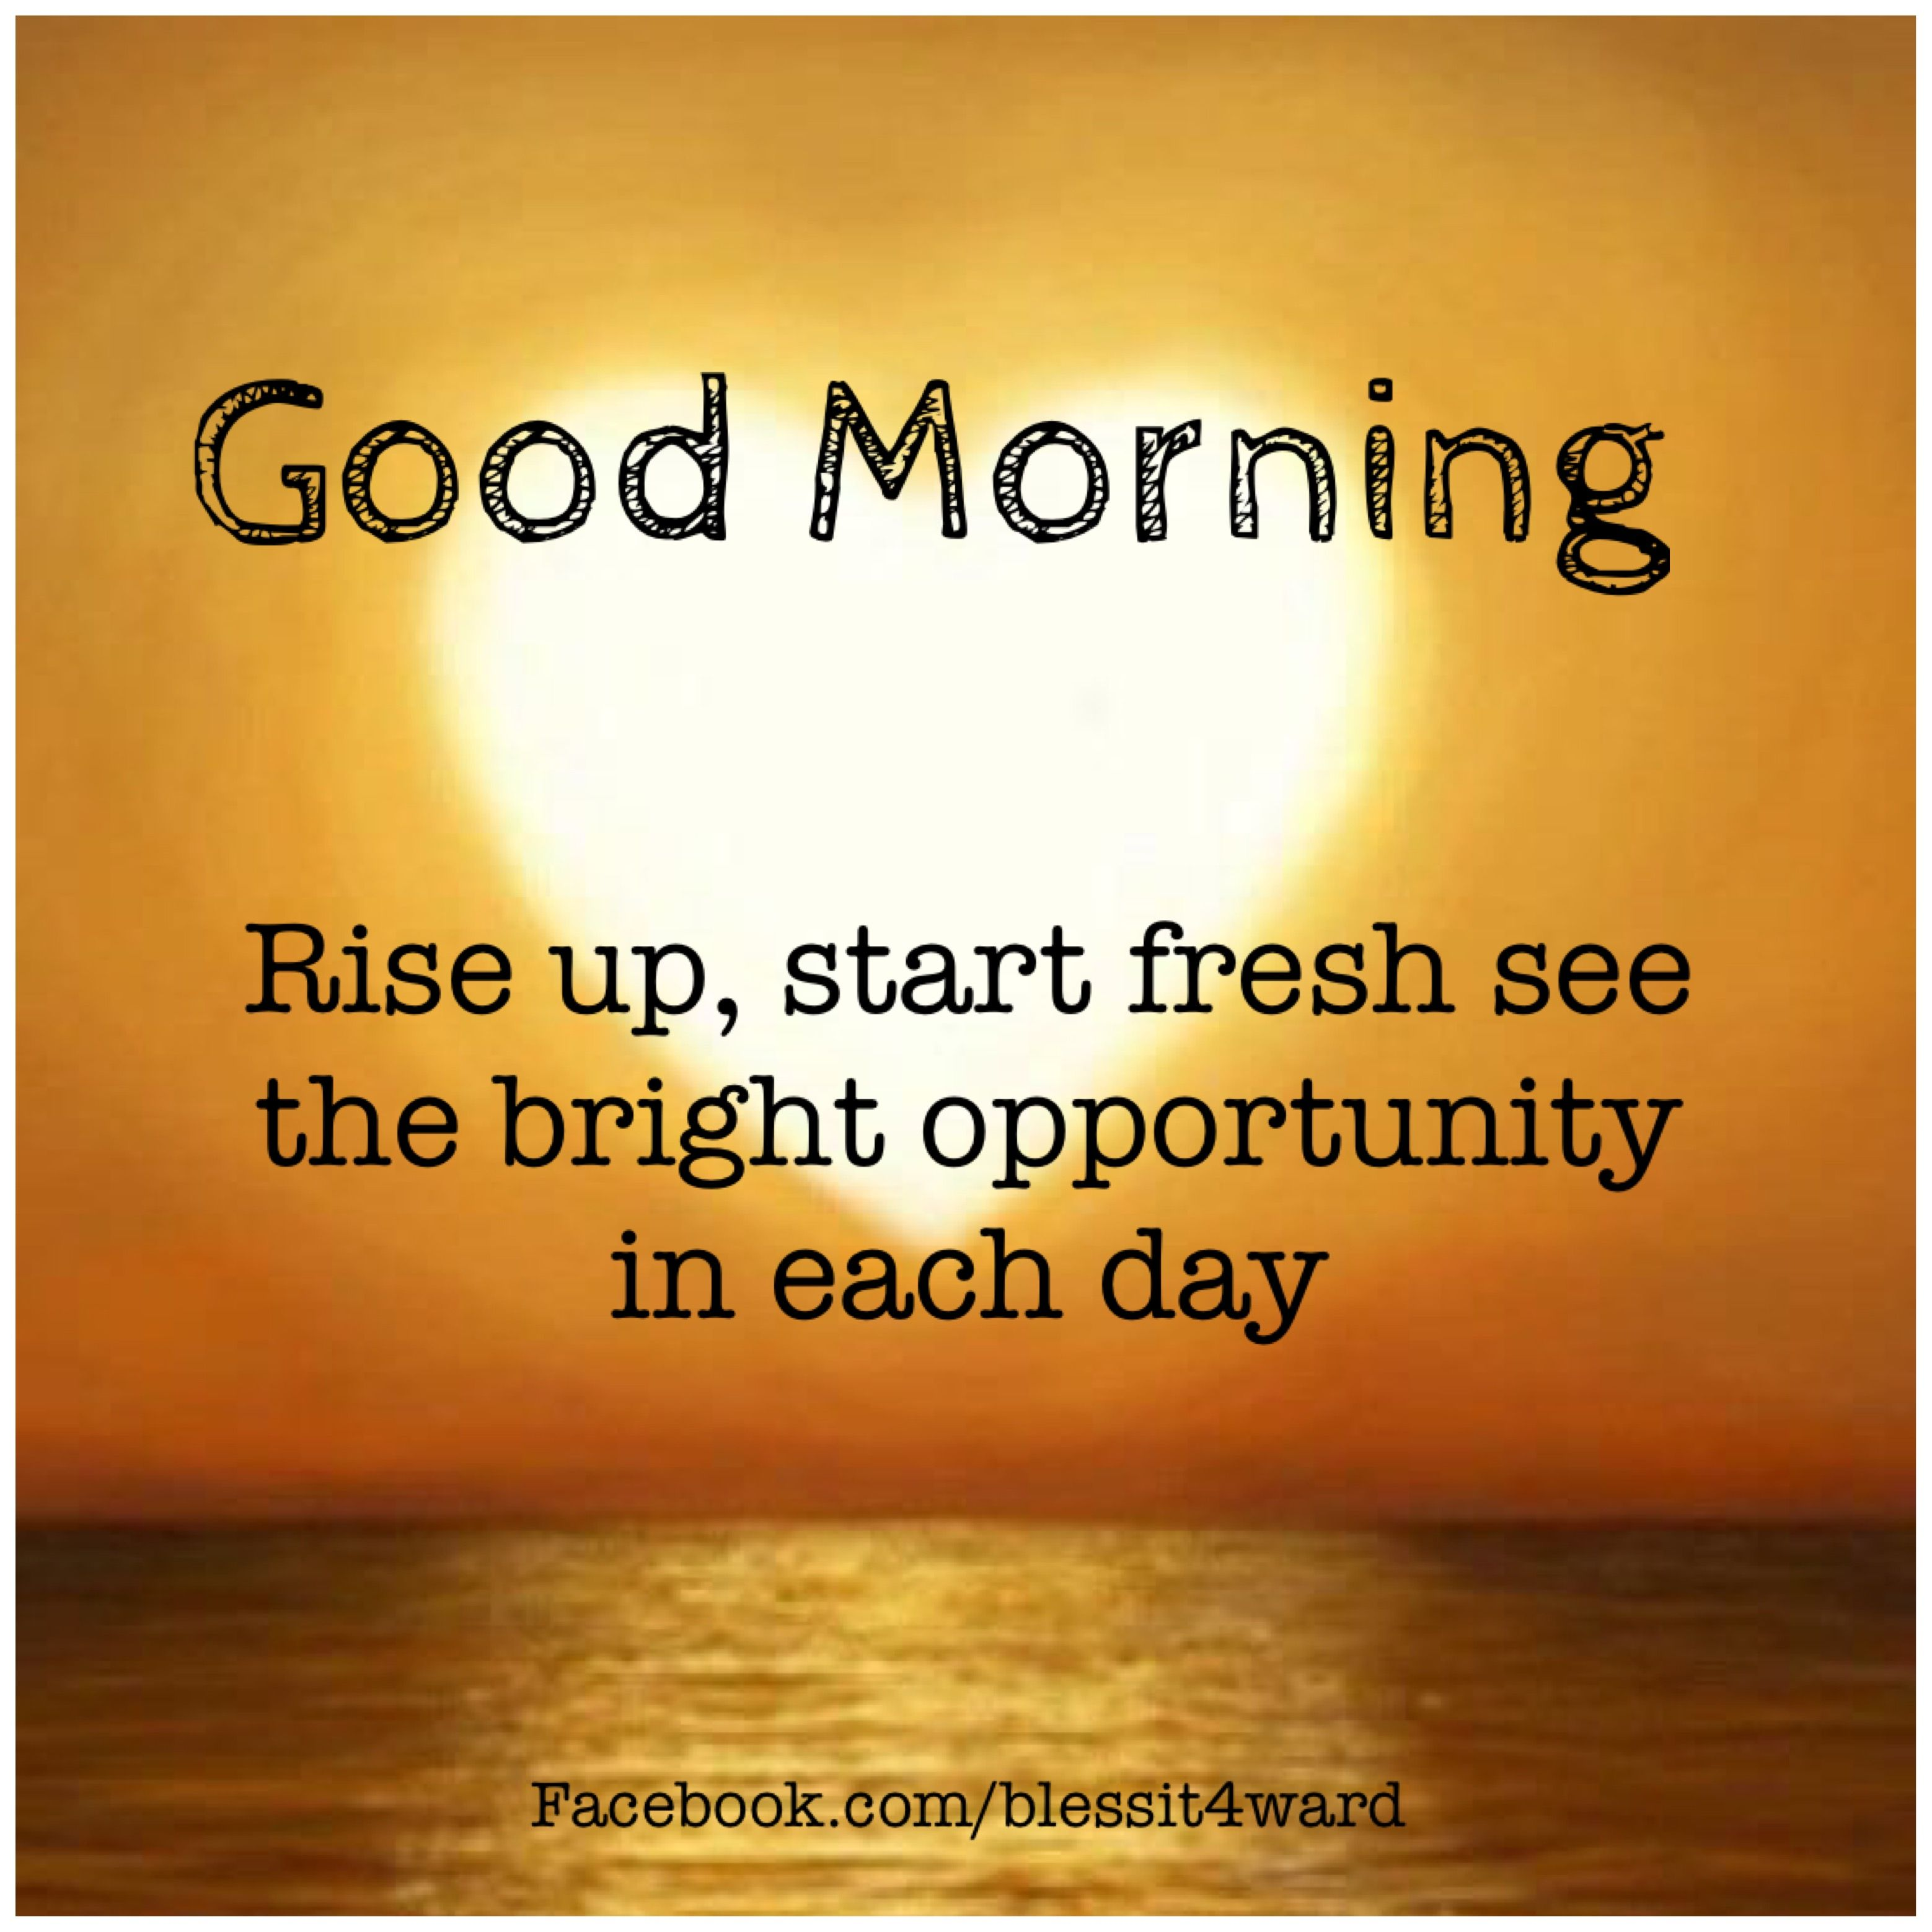 Good Morning Wave From Me To All You Lovely Peoples How Are You All As You Start Your Day Morning Wishes Quotes Good Morning Quotes Positive Morning Quotes